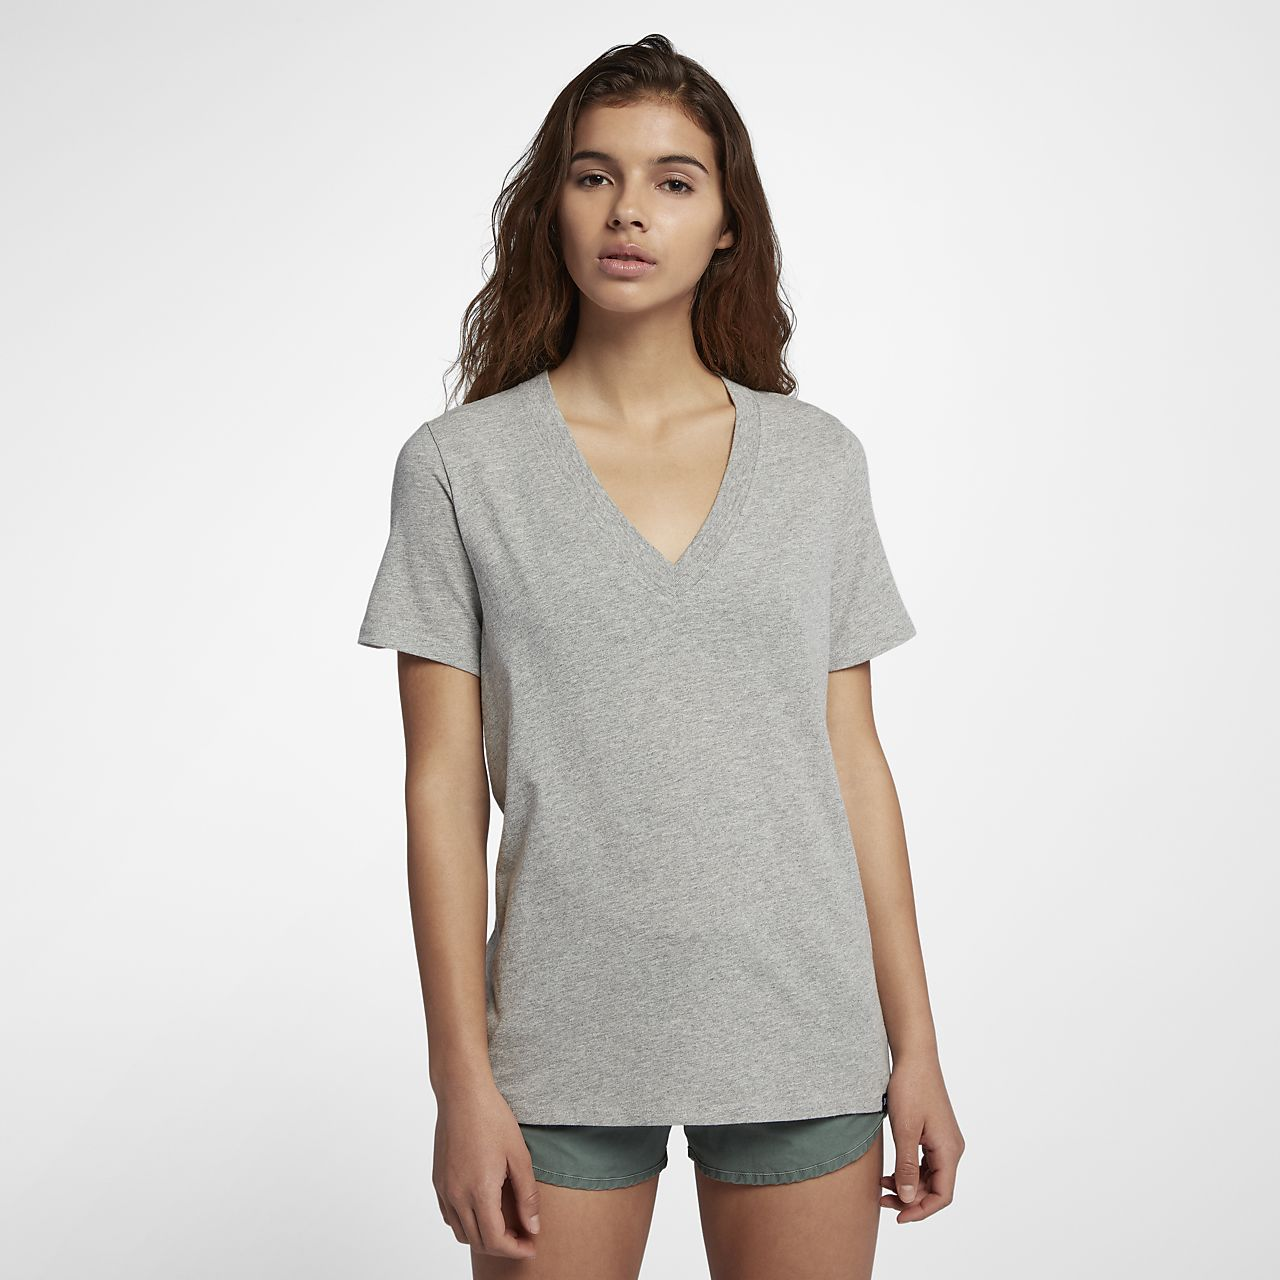 Hurley Perfect Women's V-Neck T-Shirt